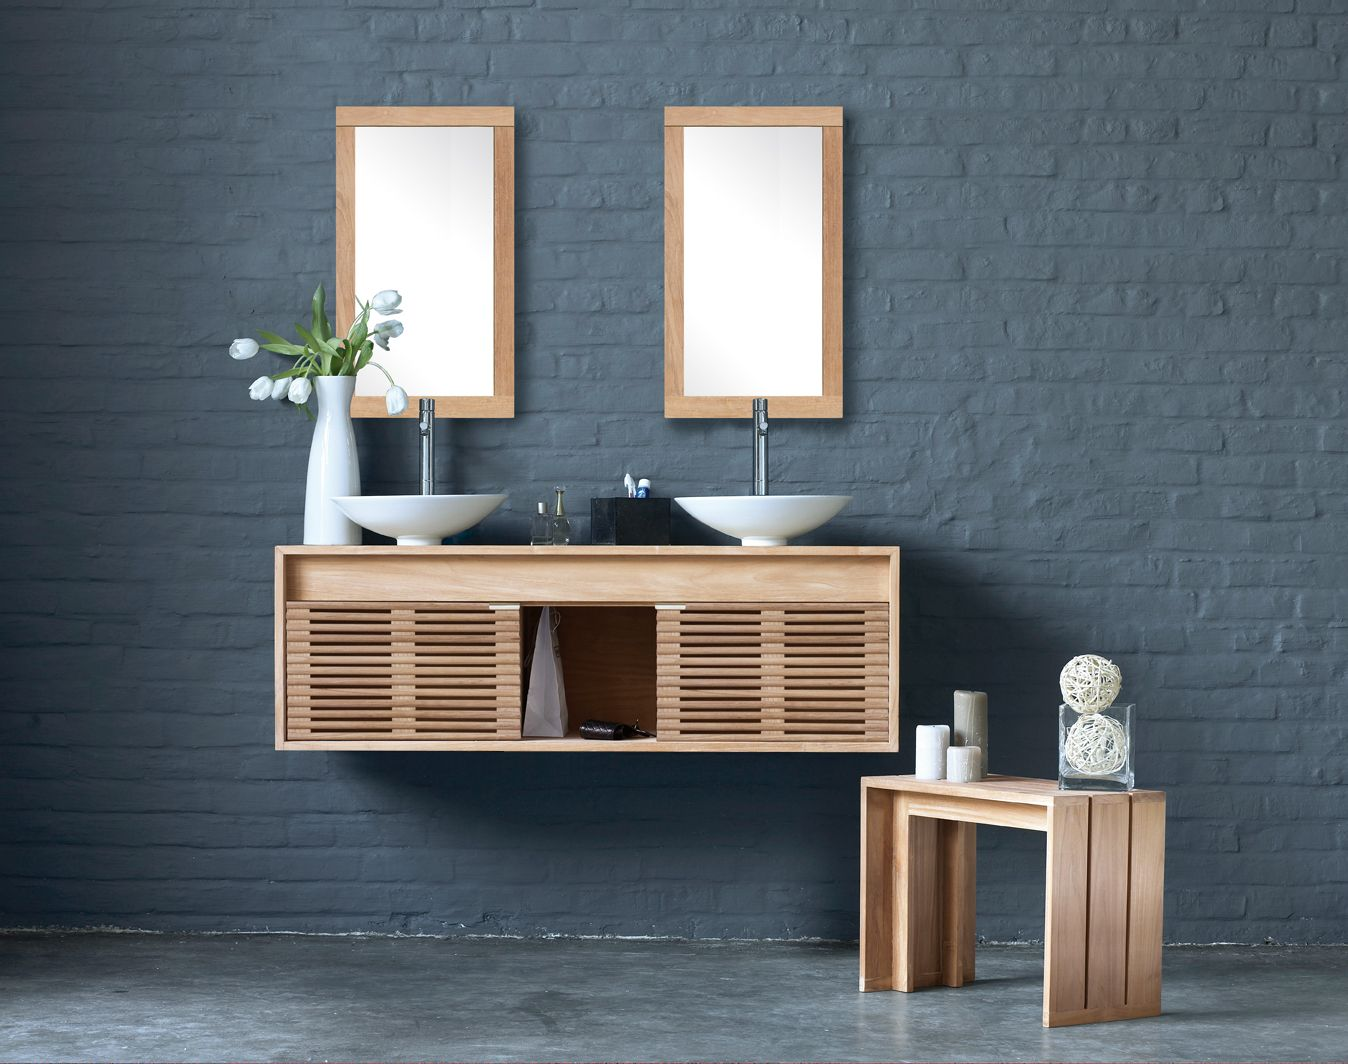 Teak Double Bathroom Vanity Cube By Line Art Sustainable Style Painted Vanity Bathroom Bathroom Vanity Remodel Bathroom Furniture Vanity